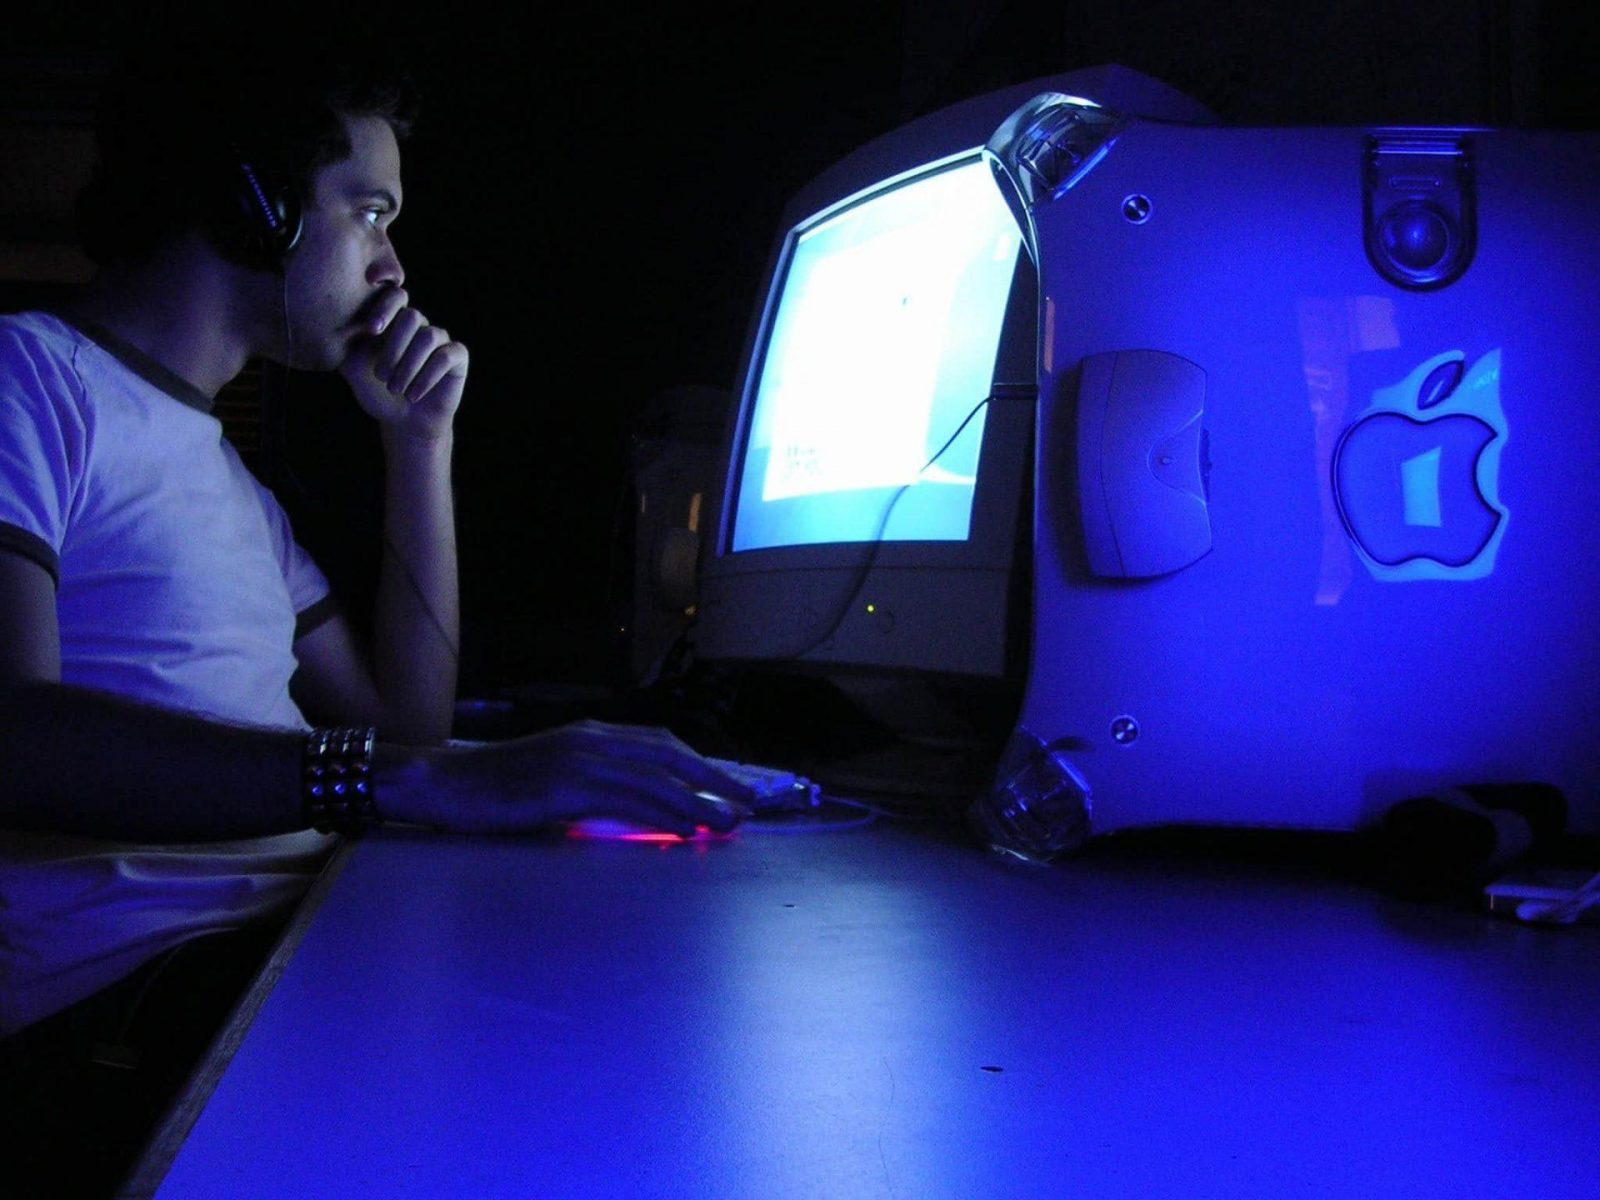 editing-sweet-1-1512493 How can Forensic Video Enhancement help Investigators?